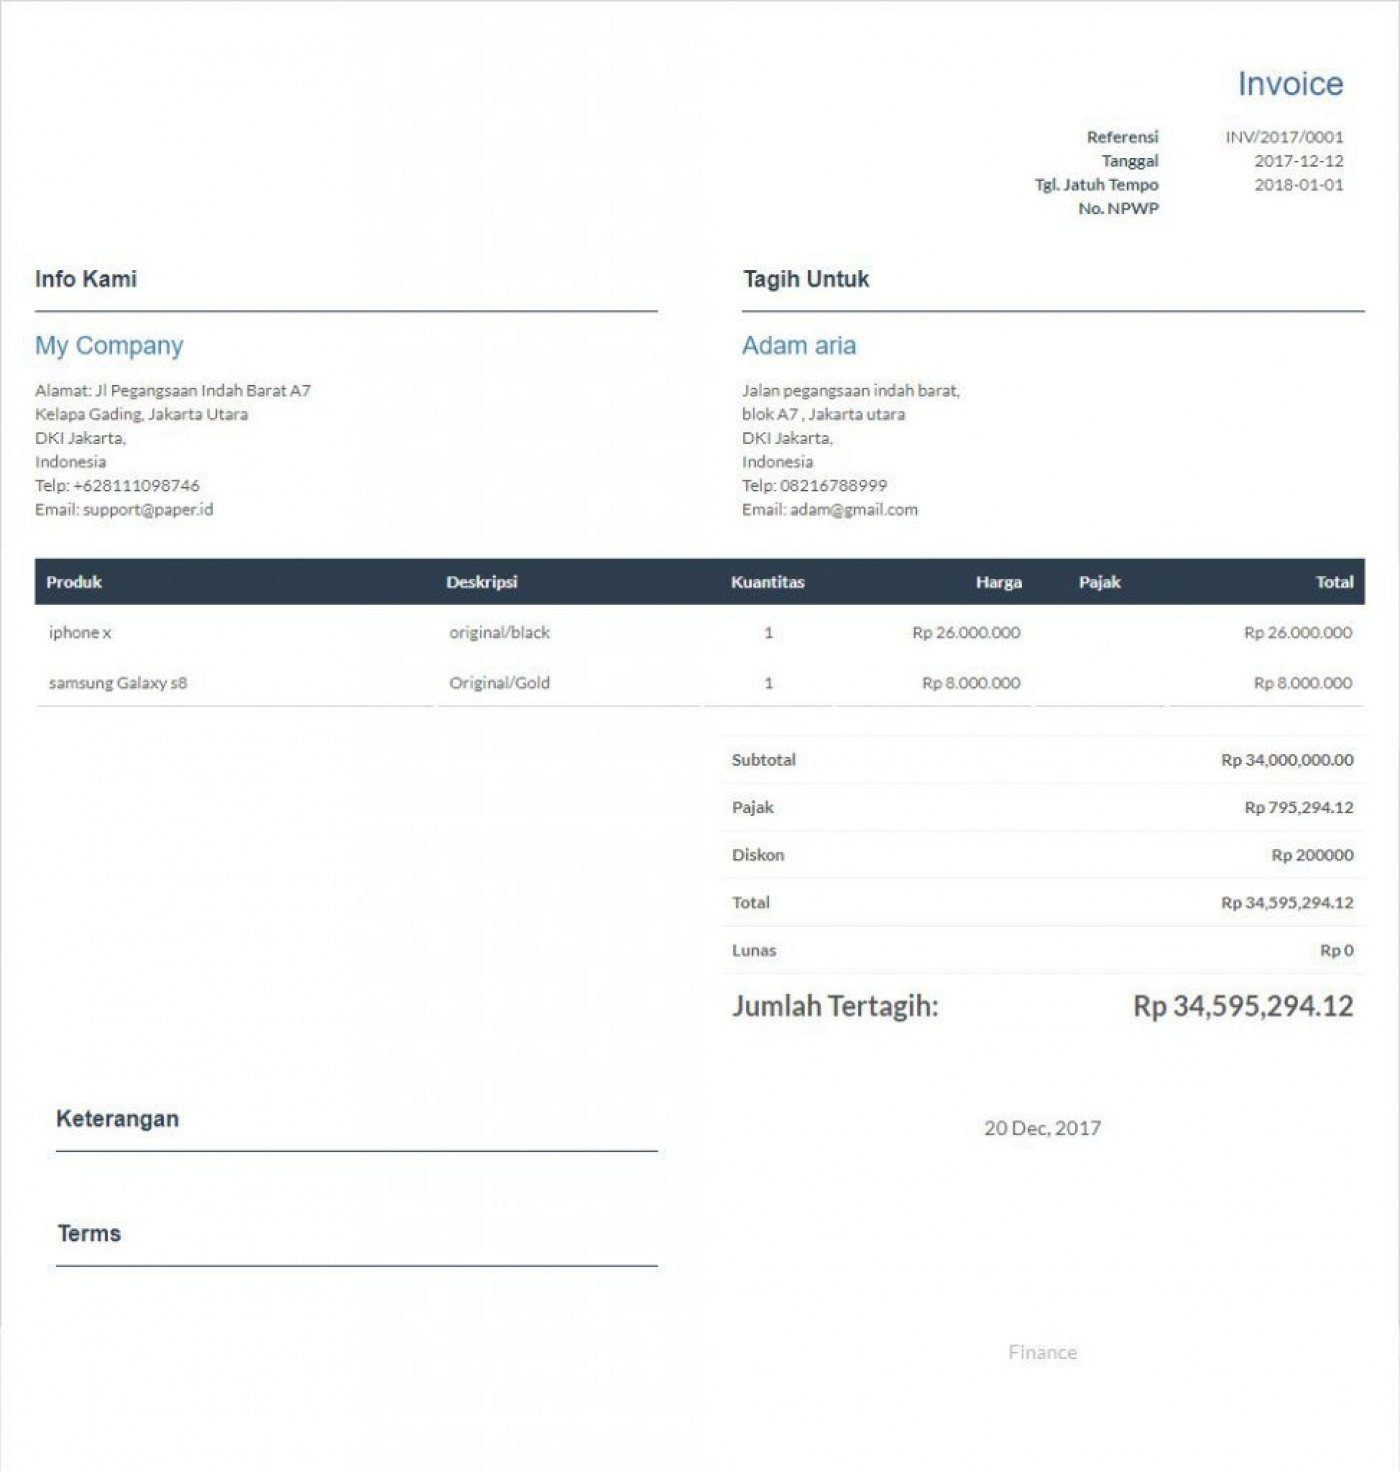 009 Imposing Invoice Template Free Download High Definition  Excel Service Word Format Gst Html1400